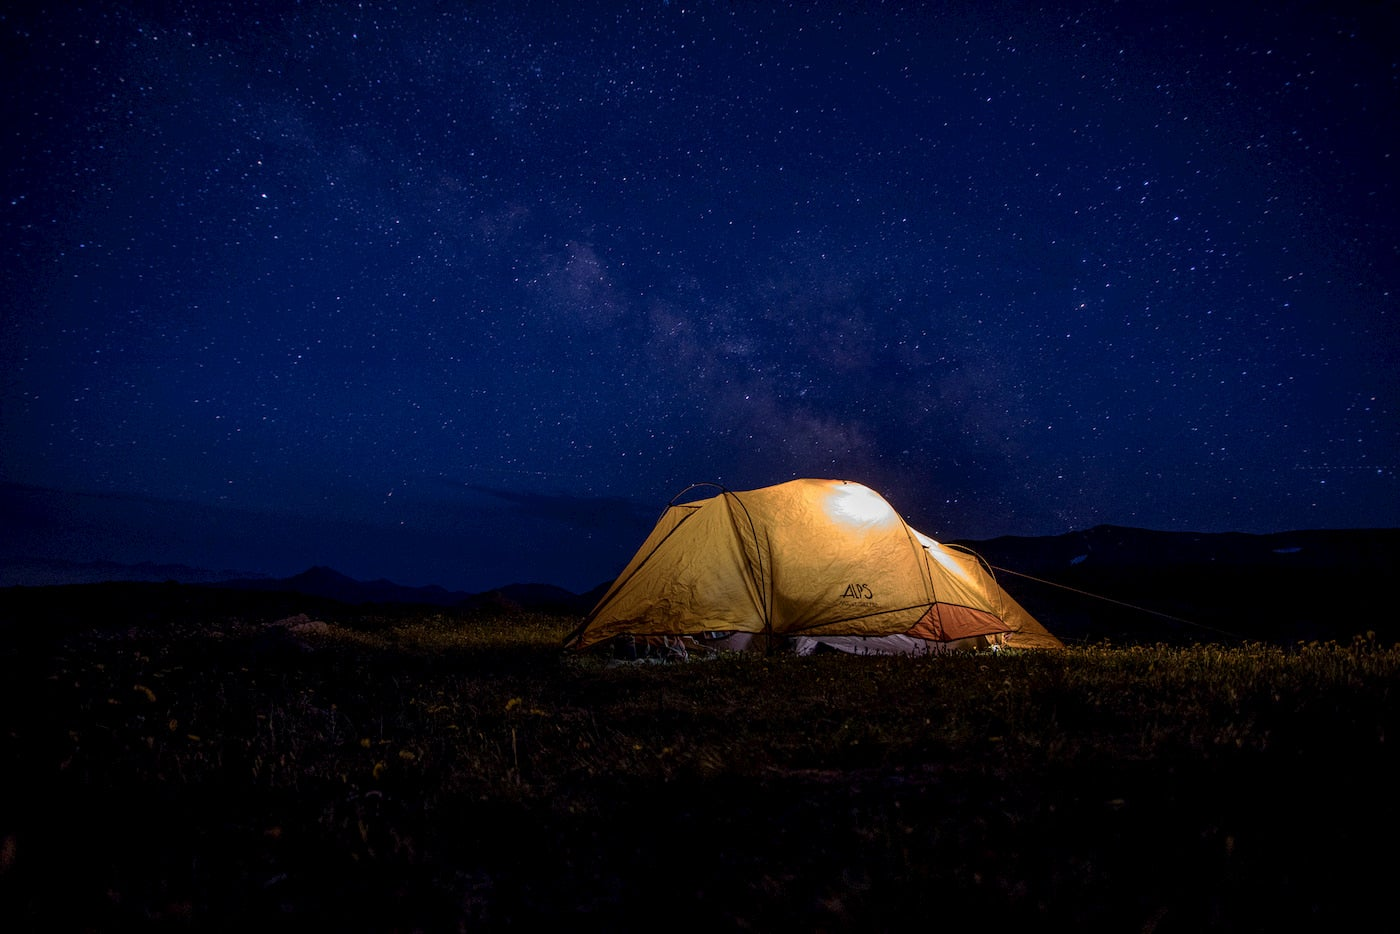 Tent lit up at night.